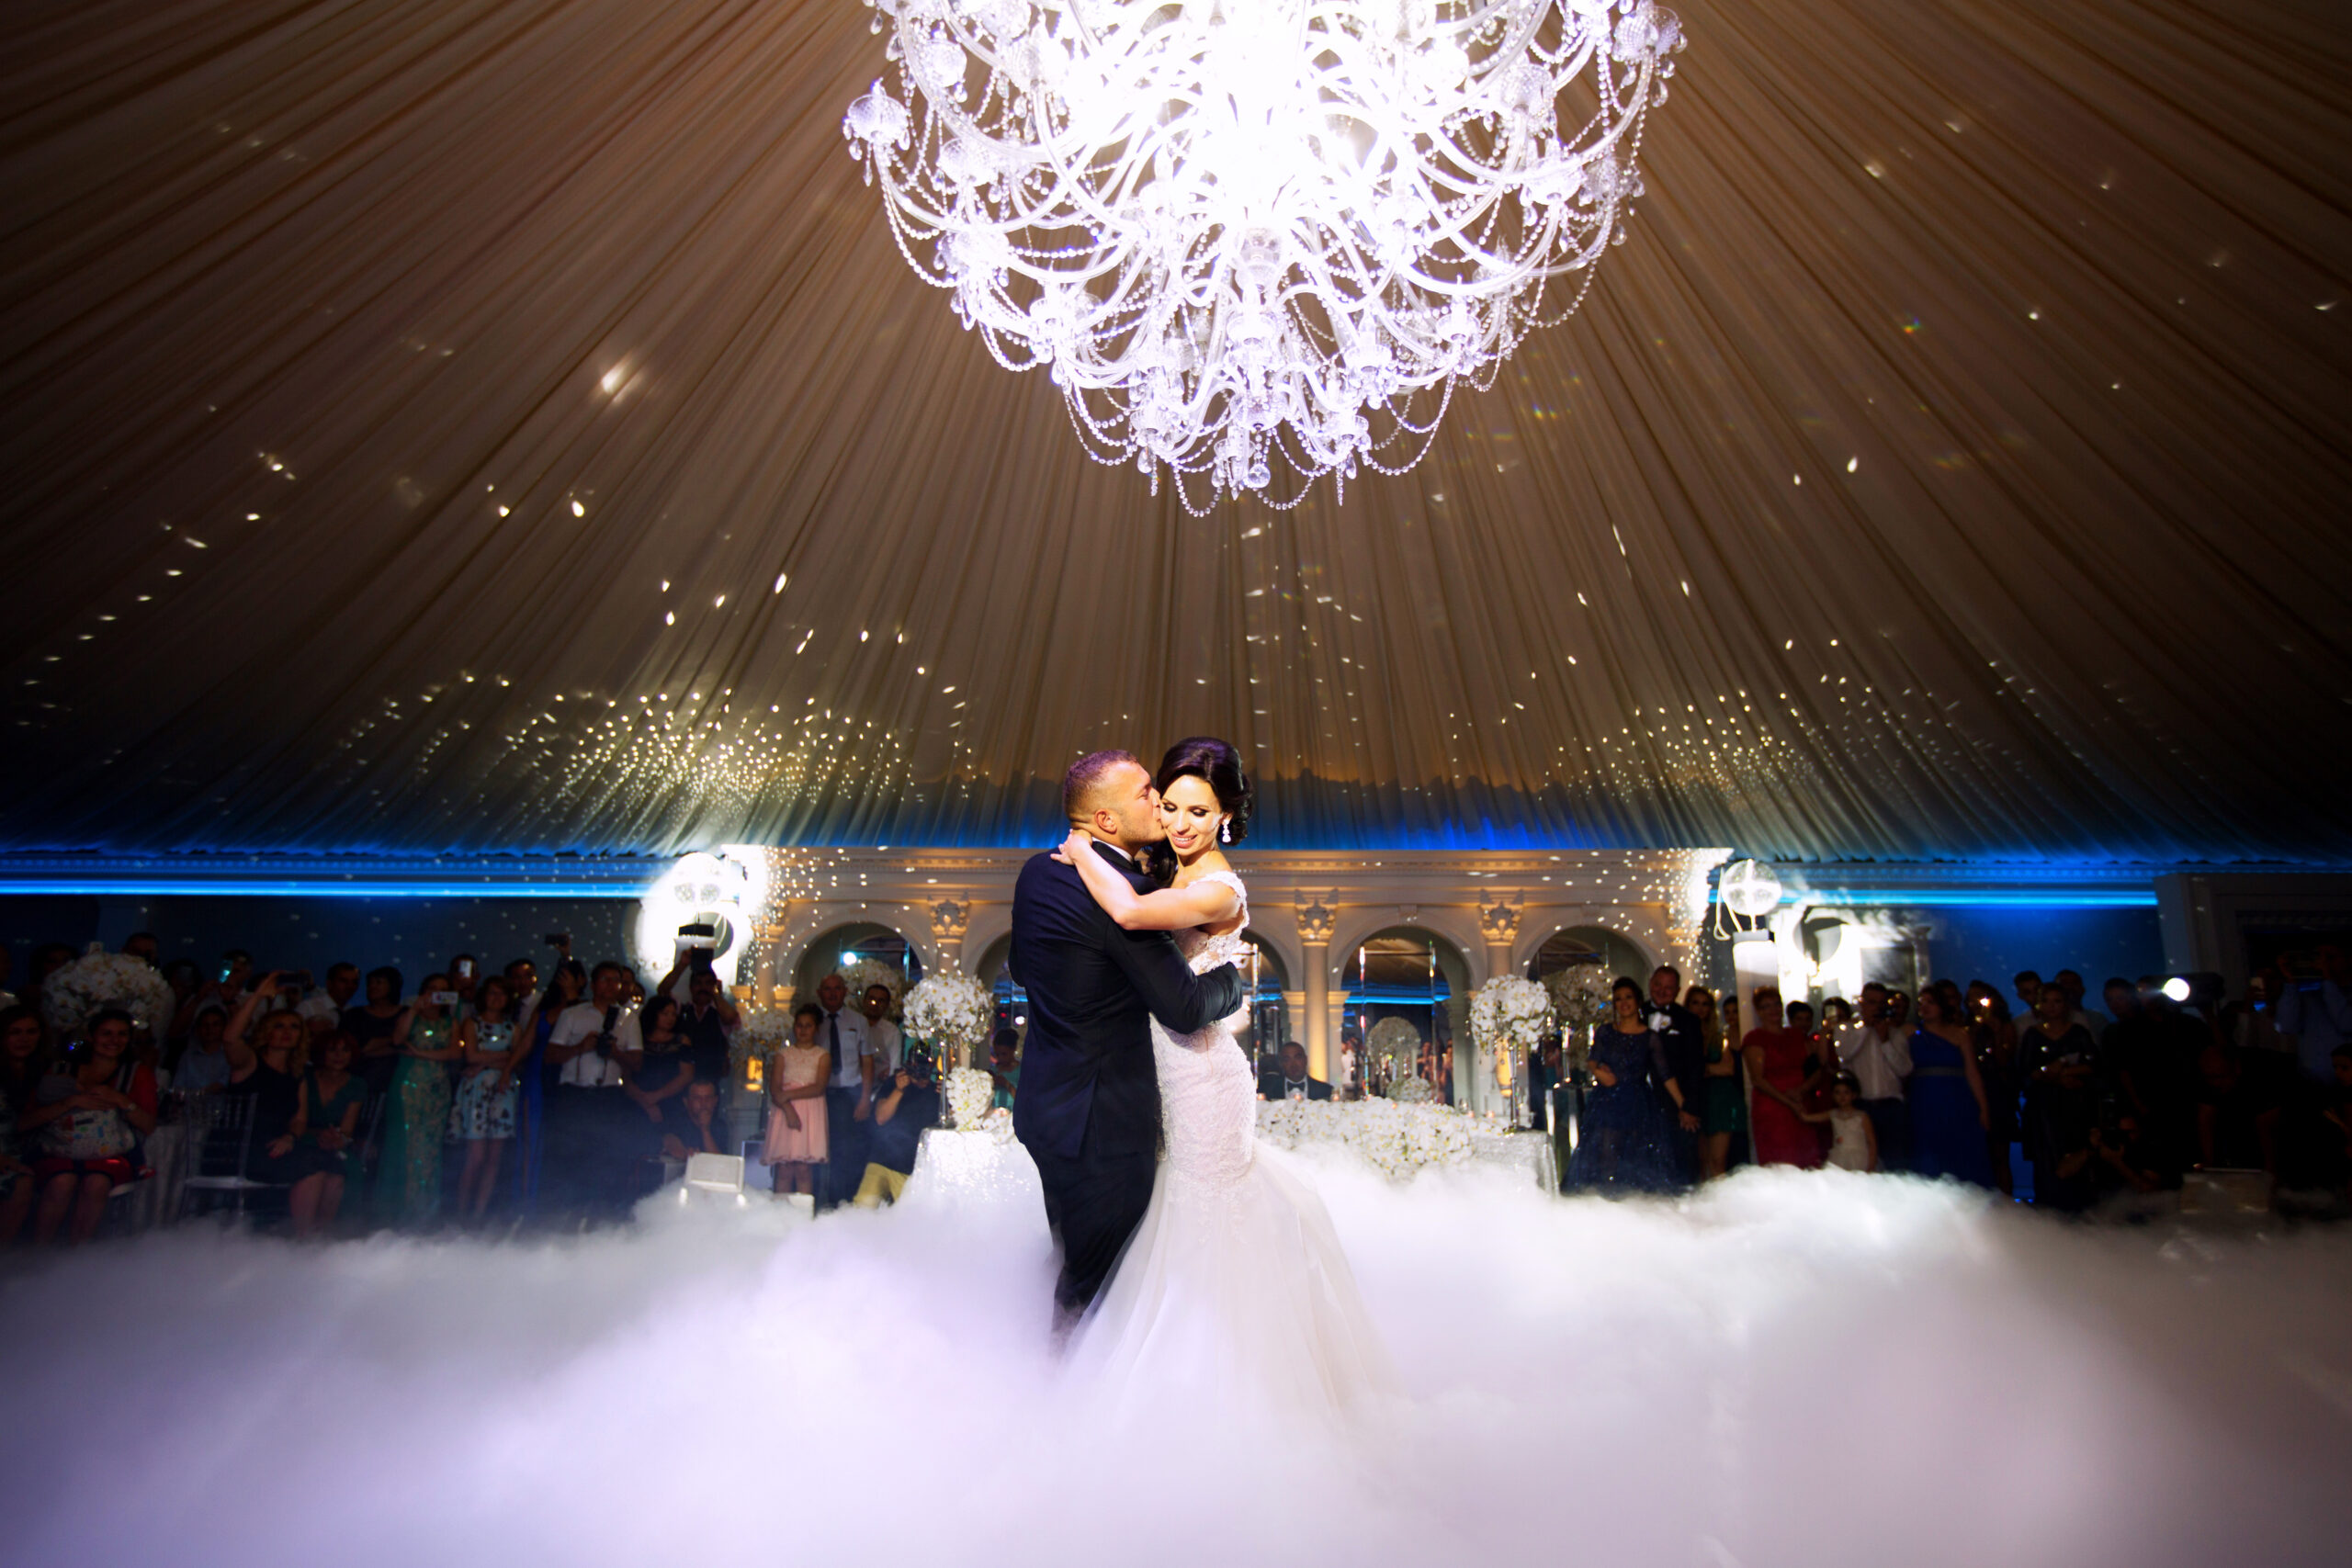 Happy bride and groom and their first dance, wedding in the elegant restaurant